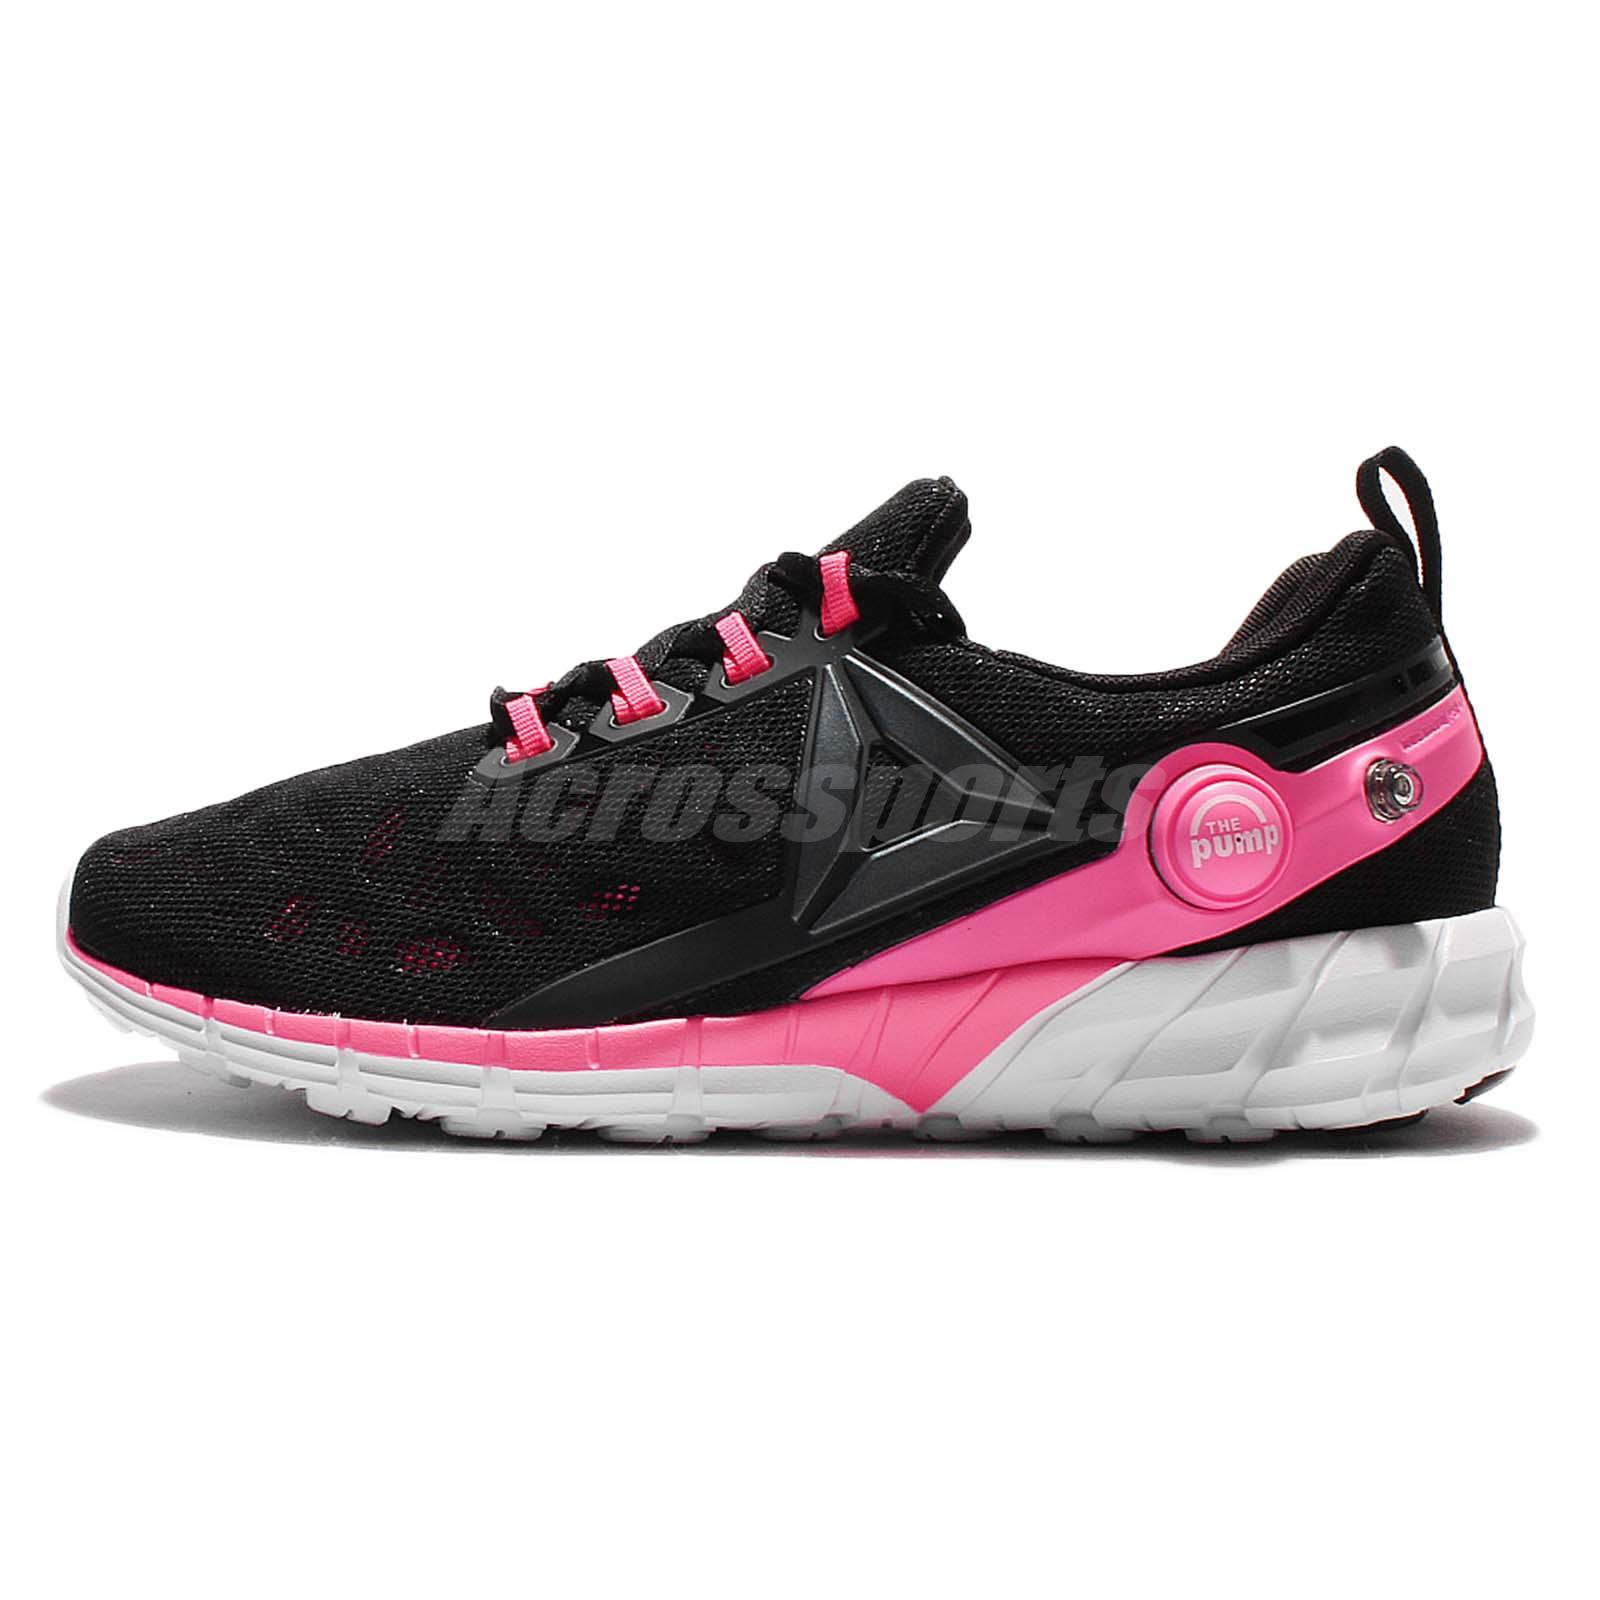 Reebok ZPump Fusion 2.5 Black Pink Women Running Shoes Sneakers AR2816 5151a9fec